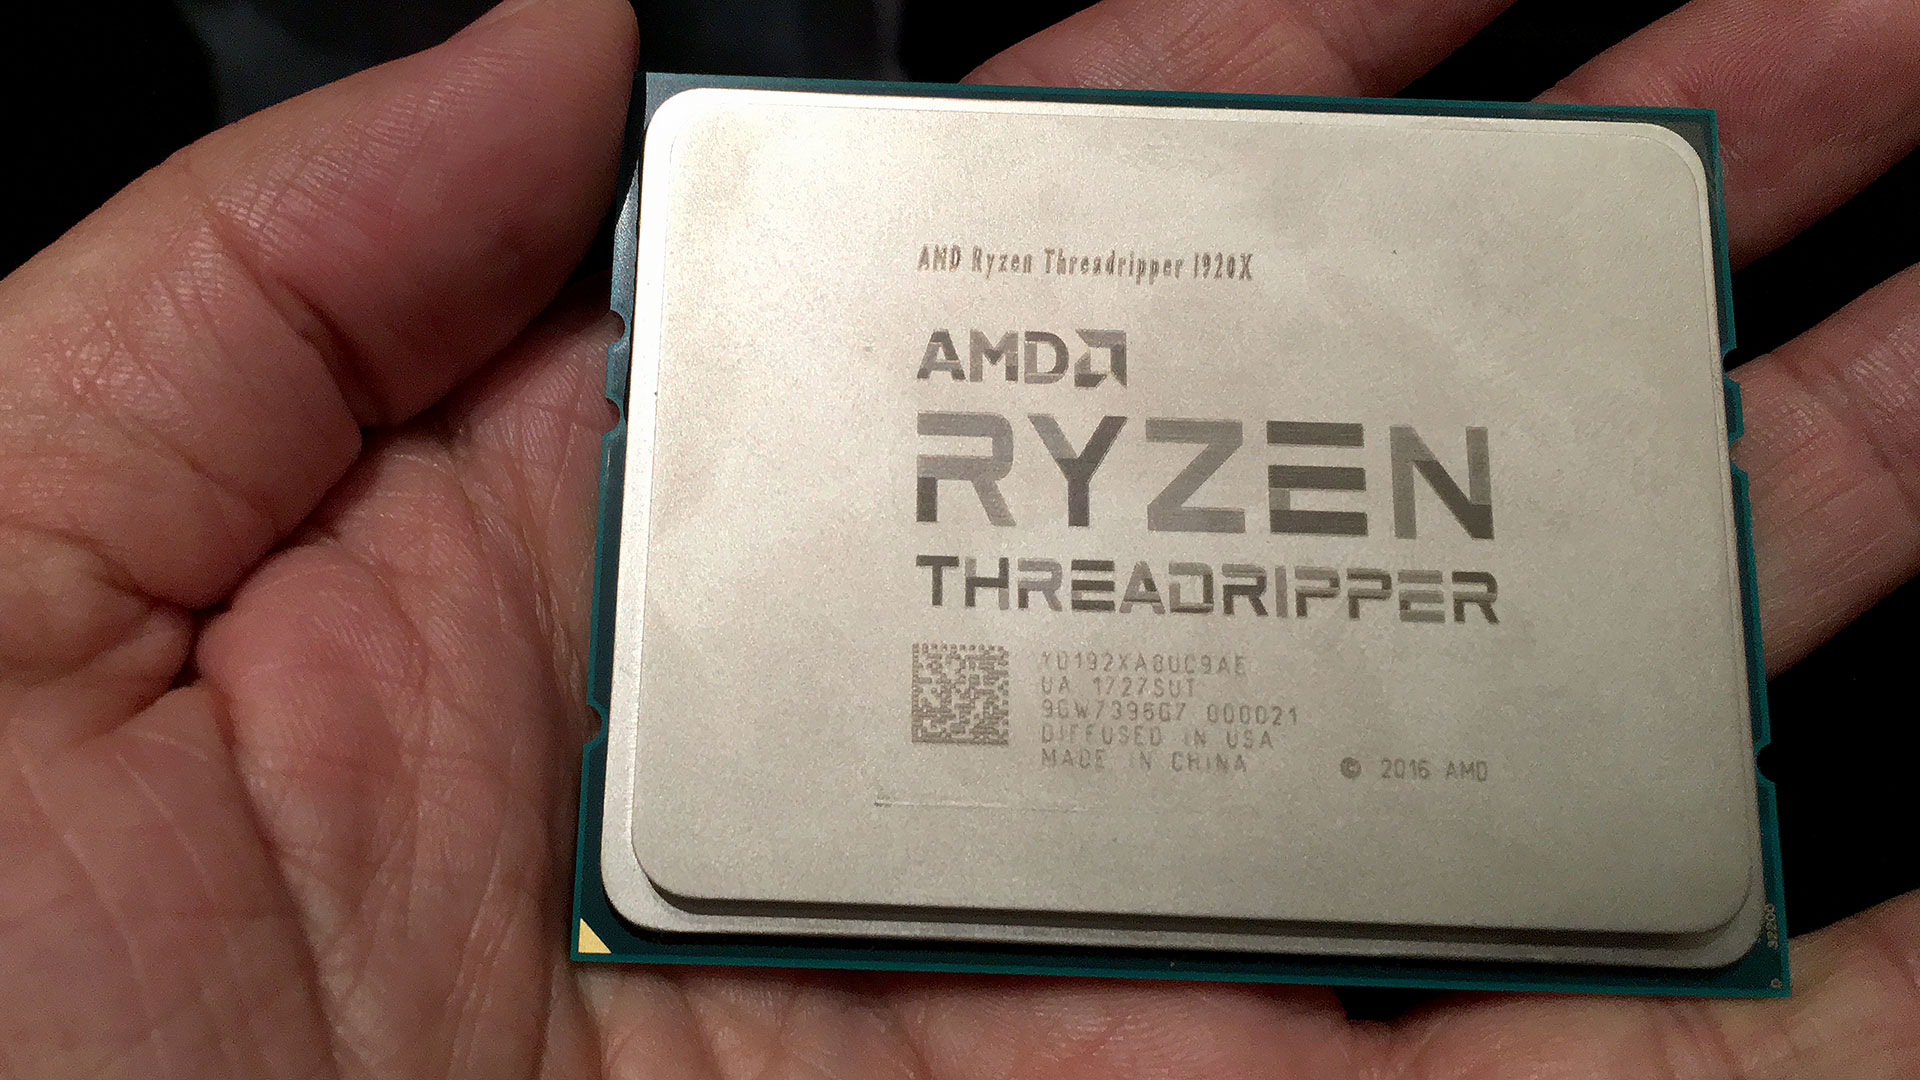 Threadripper 1900X joins the HEDT party, priced at $549 | PC Gamer